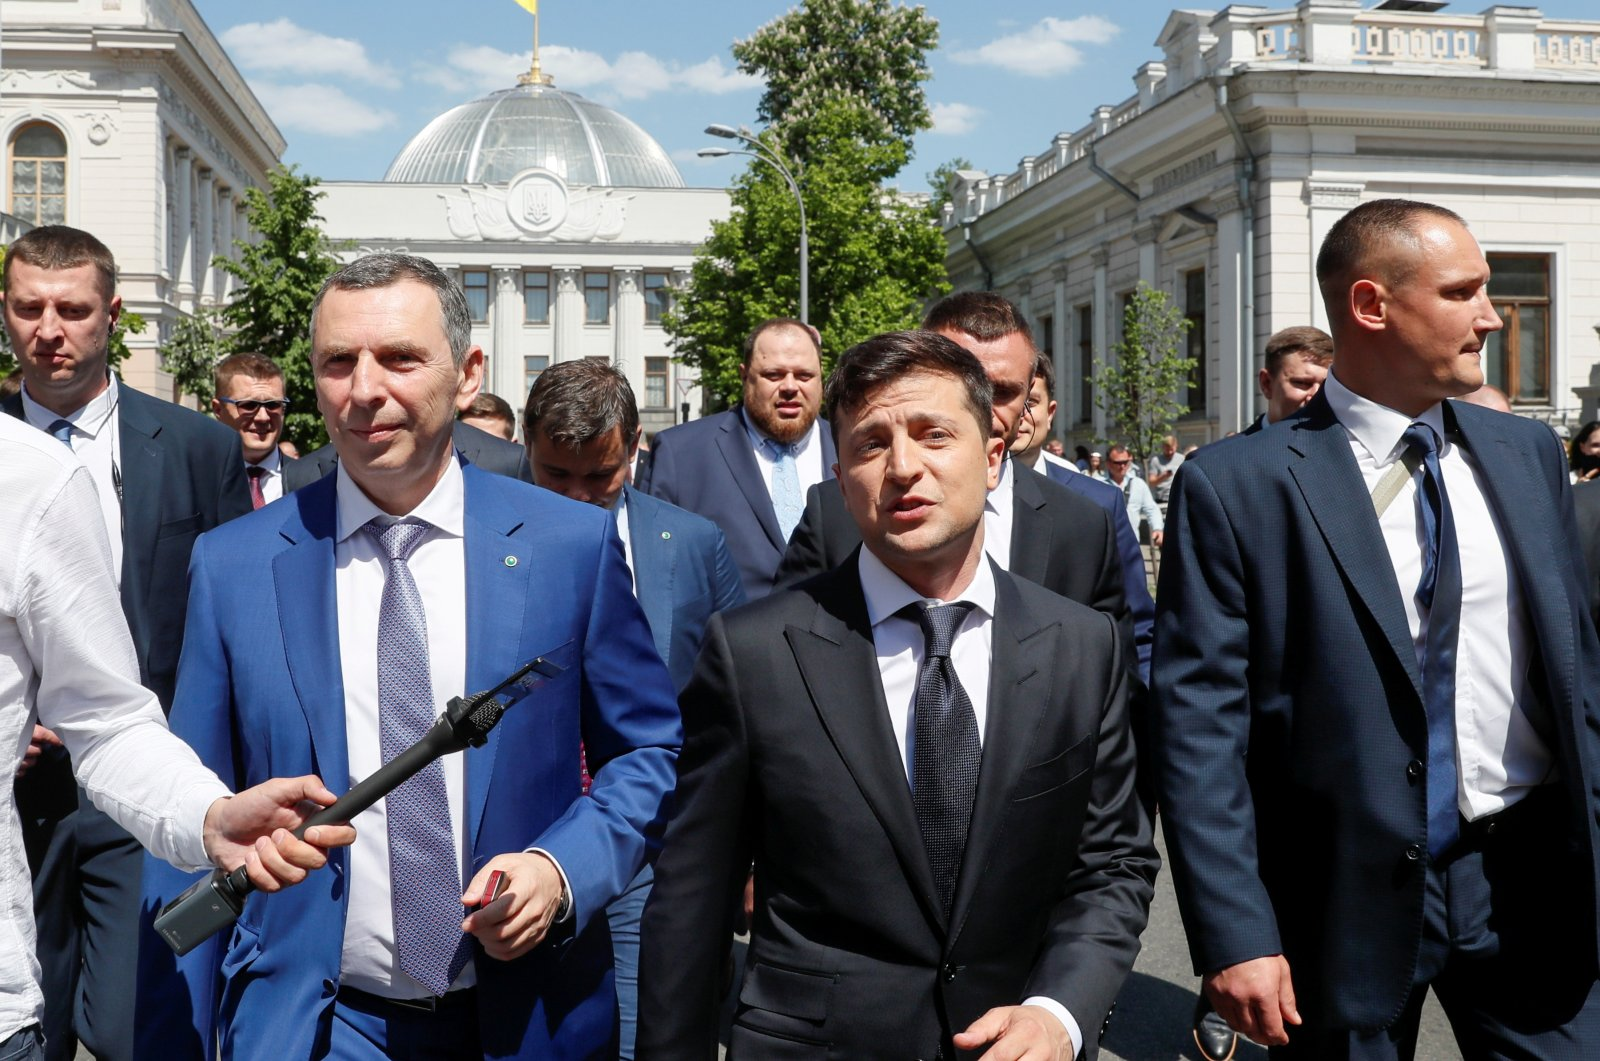 Ukraine's President Volodymyr Zelenskyy, accompanied by his aide Serhiy Shefir, other officials and bodyguards, walks from Parliament to the presidential administration office, after his inauguration, Kyiv, Ukraine, May 20, 2019. (Reuters Photo)